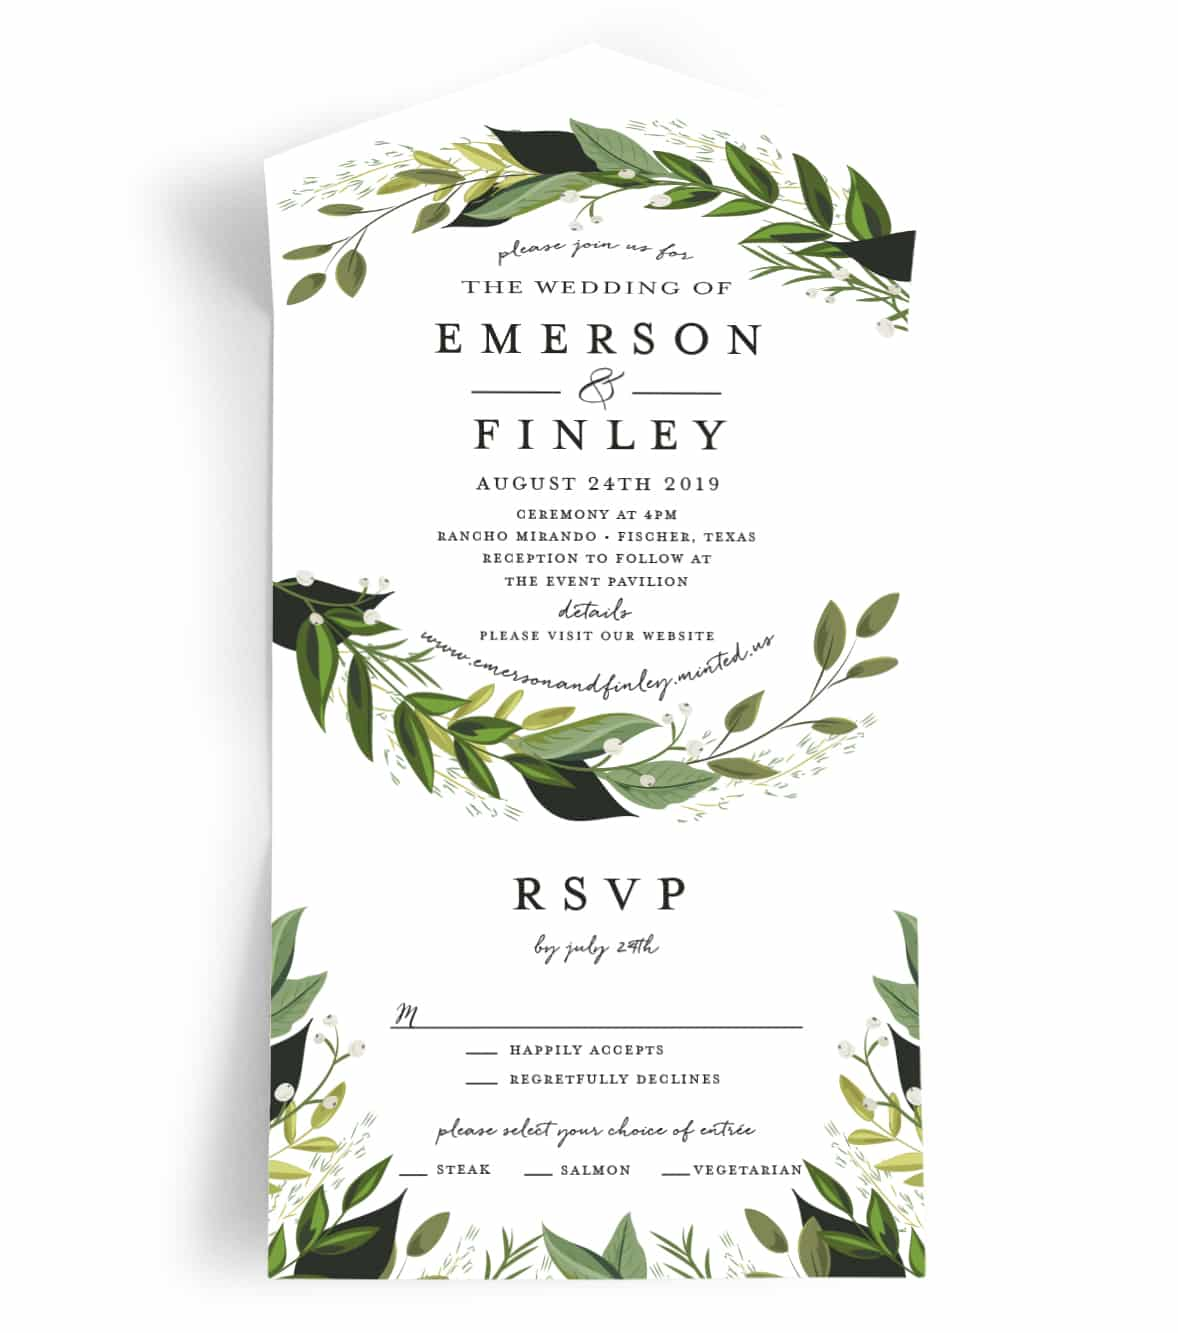 Attractive One Wedding Invitations Wedding Invitation From Minted Most Inexpensive Efficient Wedding Invitations Ever All One Wedding Invitations Cheapest All wedding invitation All In One Wedding Invitations